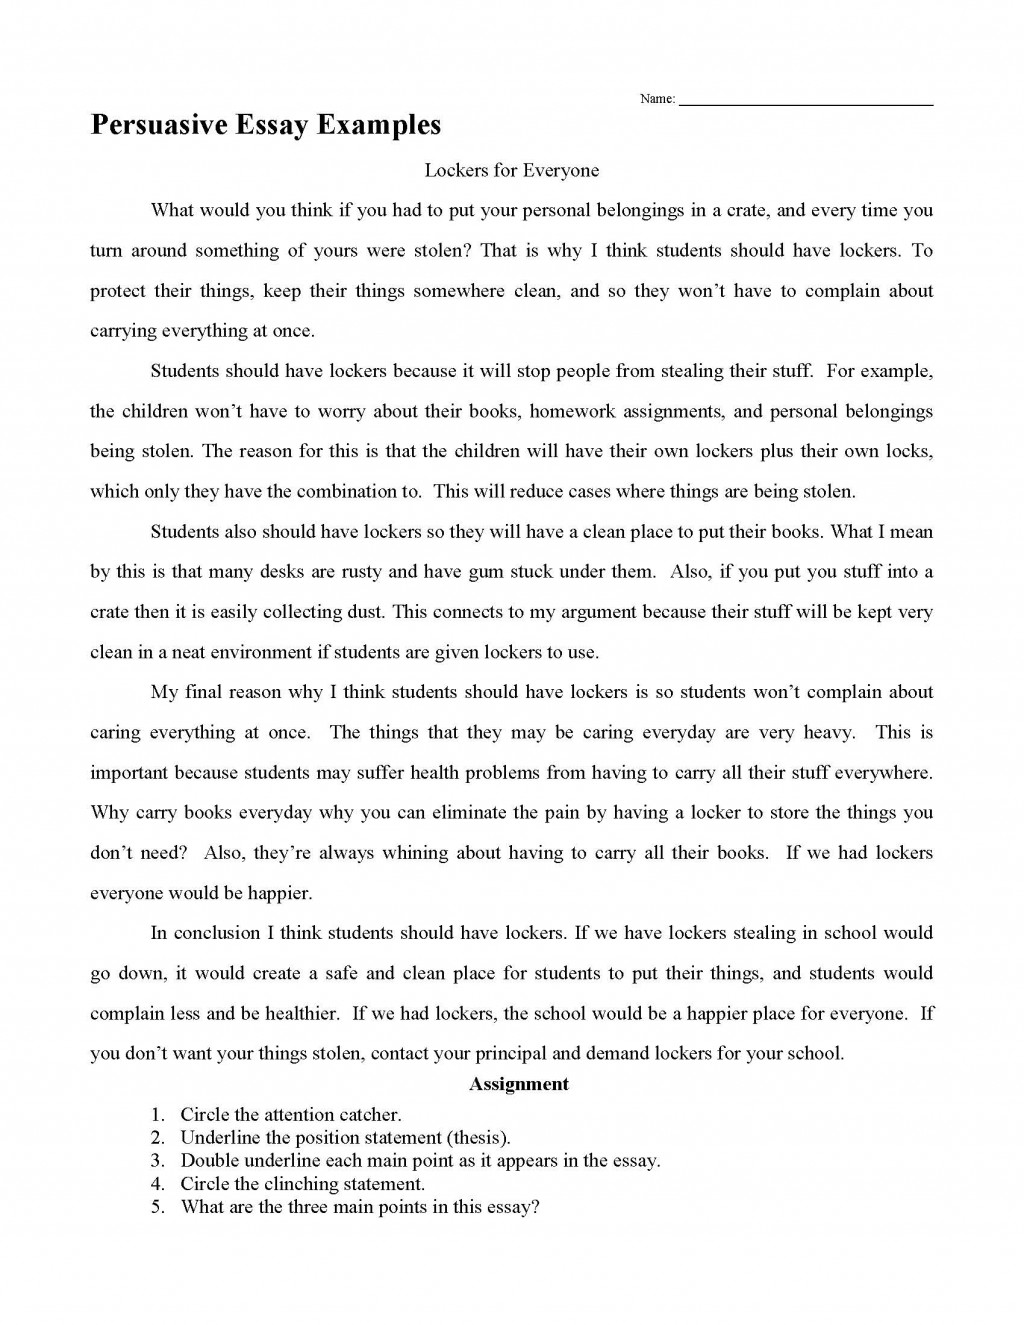 003 Essay Example Persuasive Examples Impressive Sample For 4th Grade 6 Topics Large